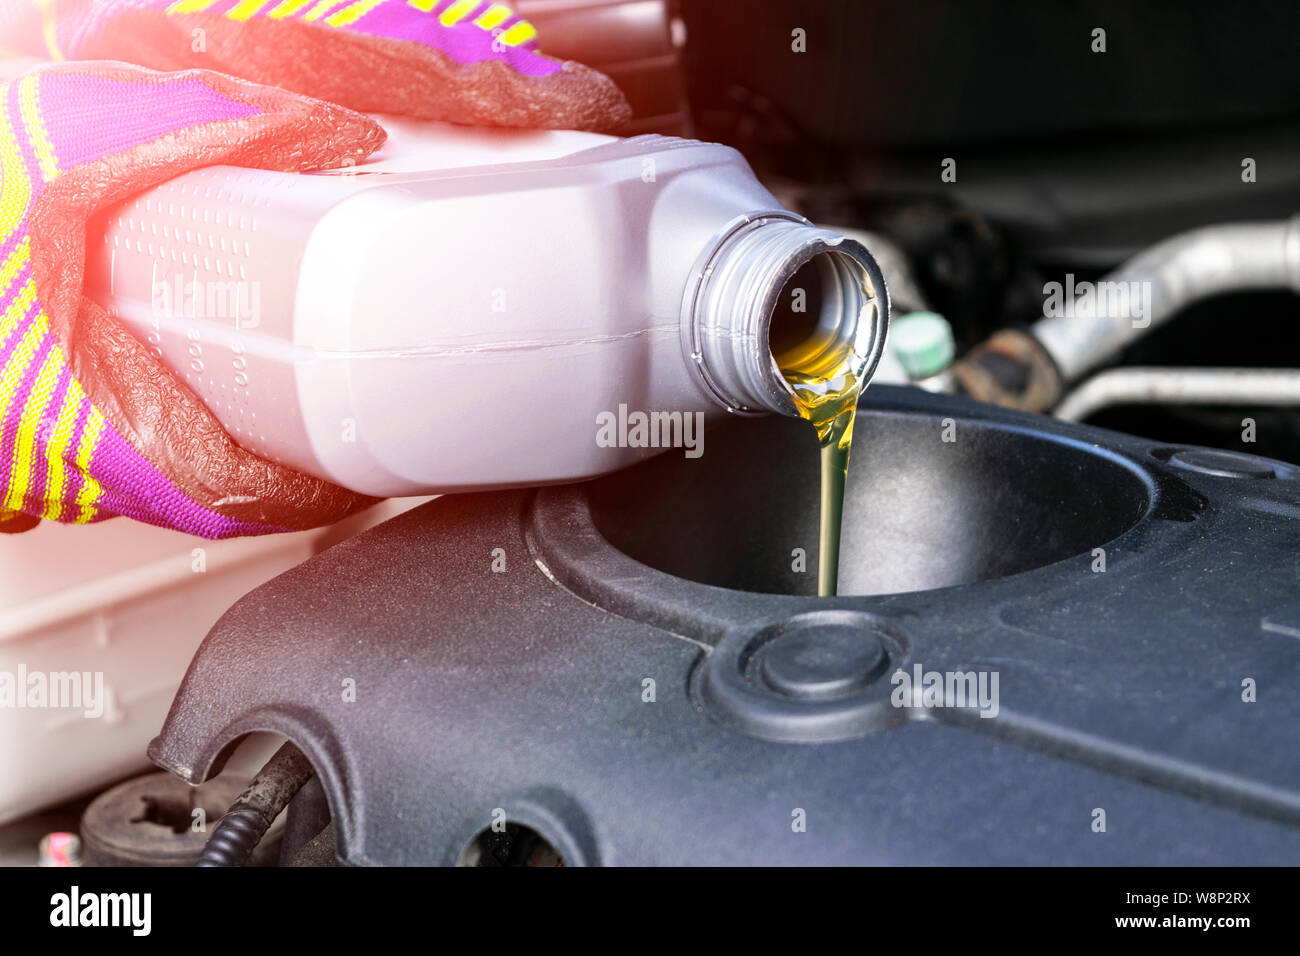 Change the Oil. Hand mechanic in repairing car. Close up oil for car engine. Motor oil pouring to car engine. Refueling and pouring oil into the engin Stock Photo